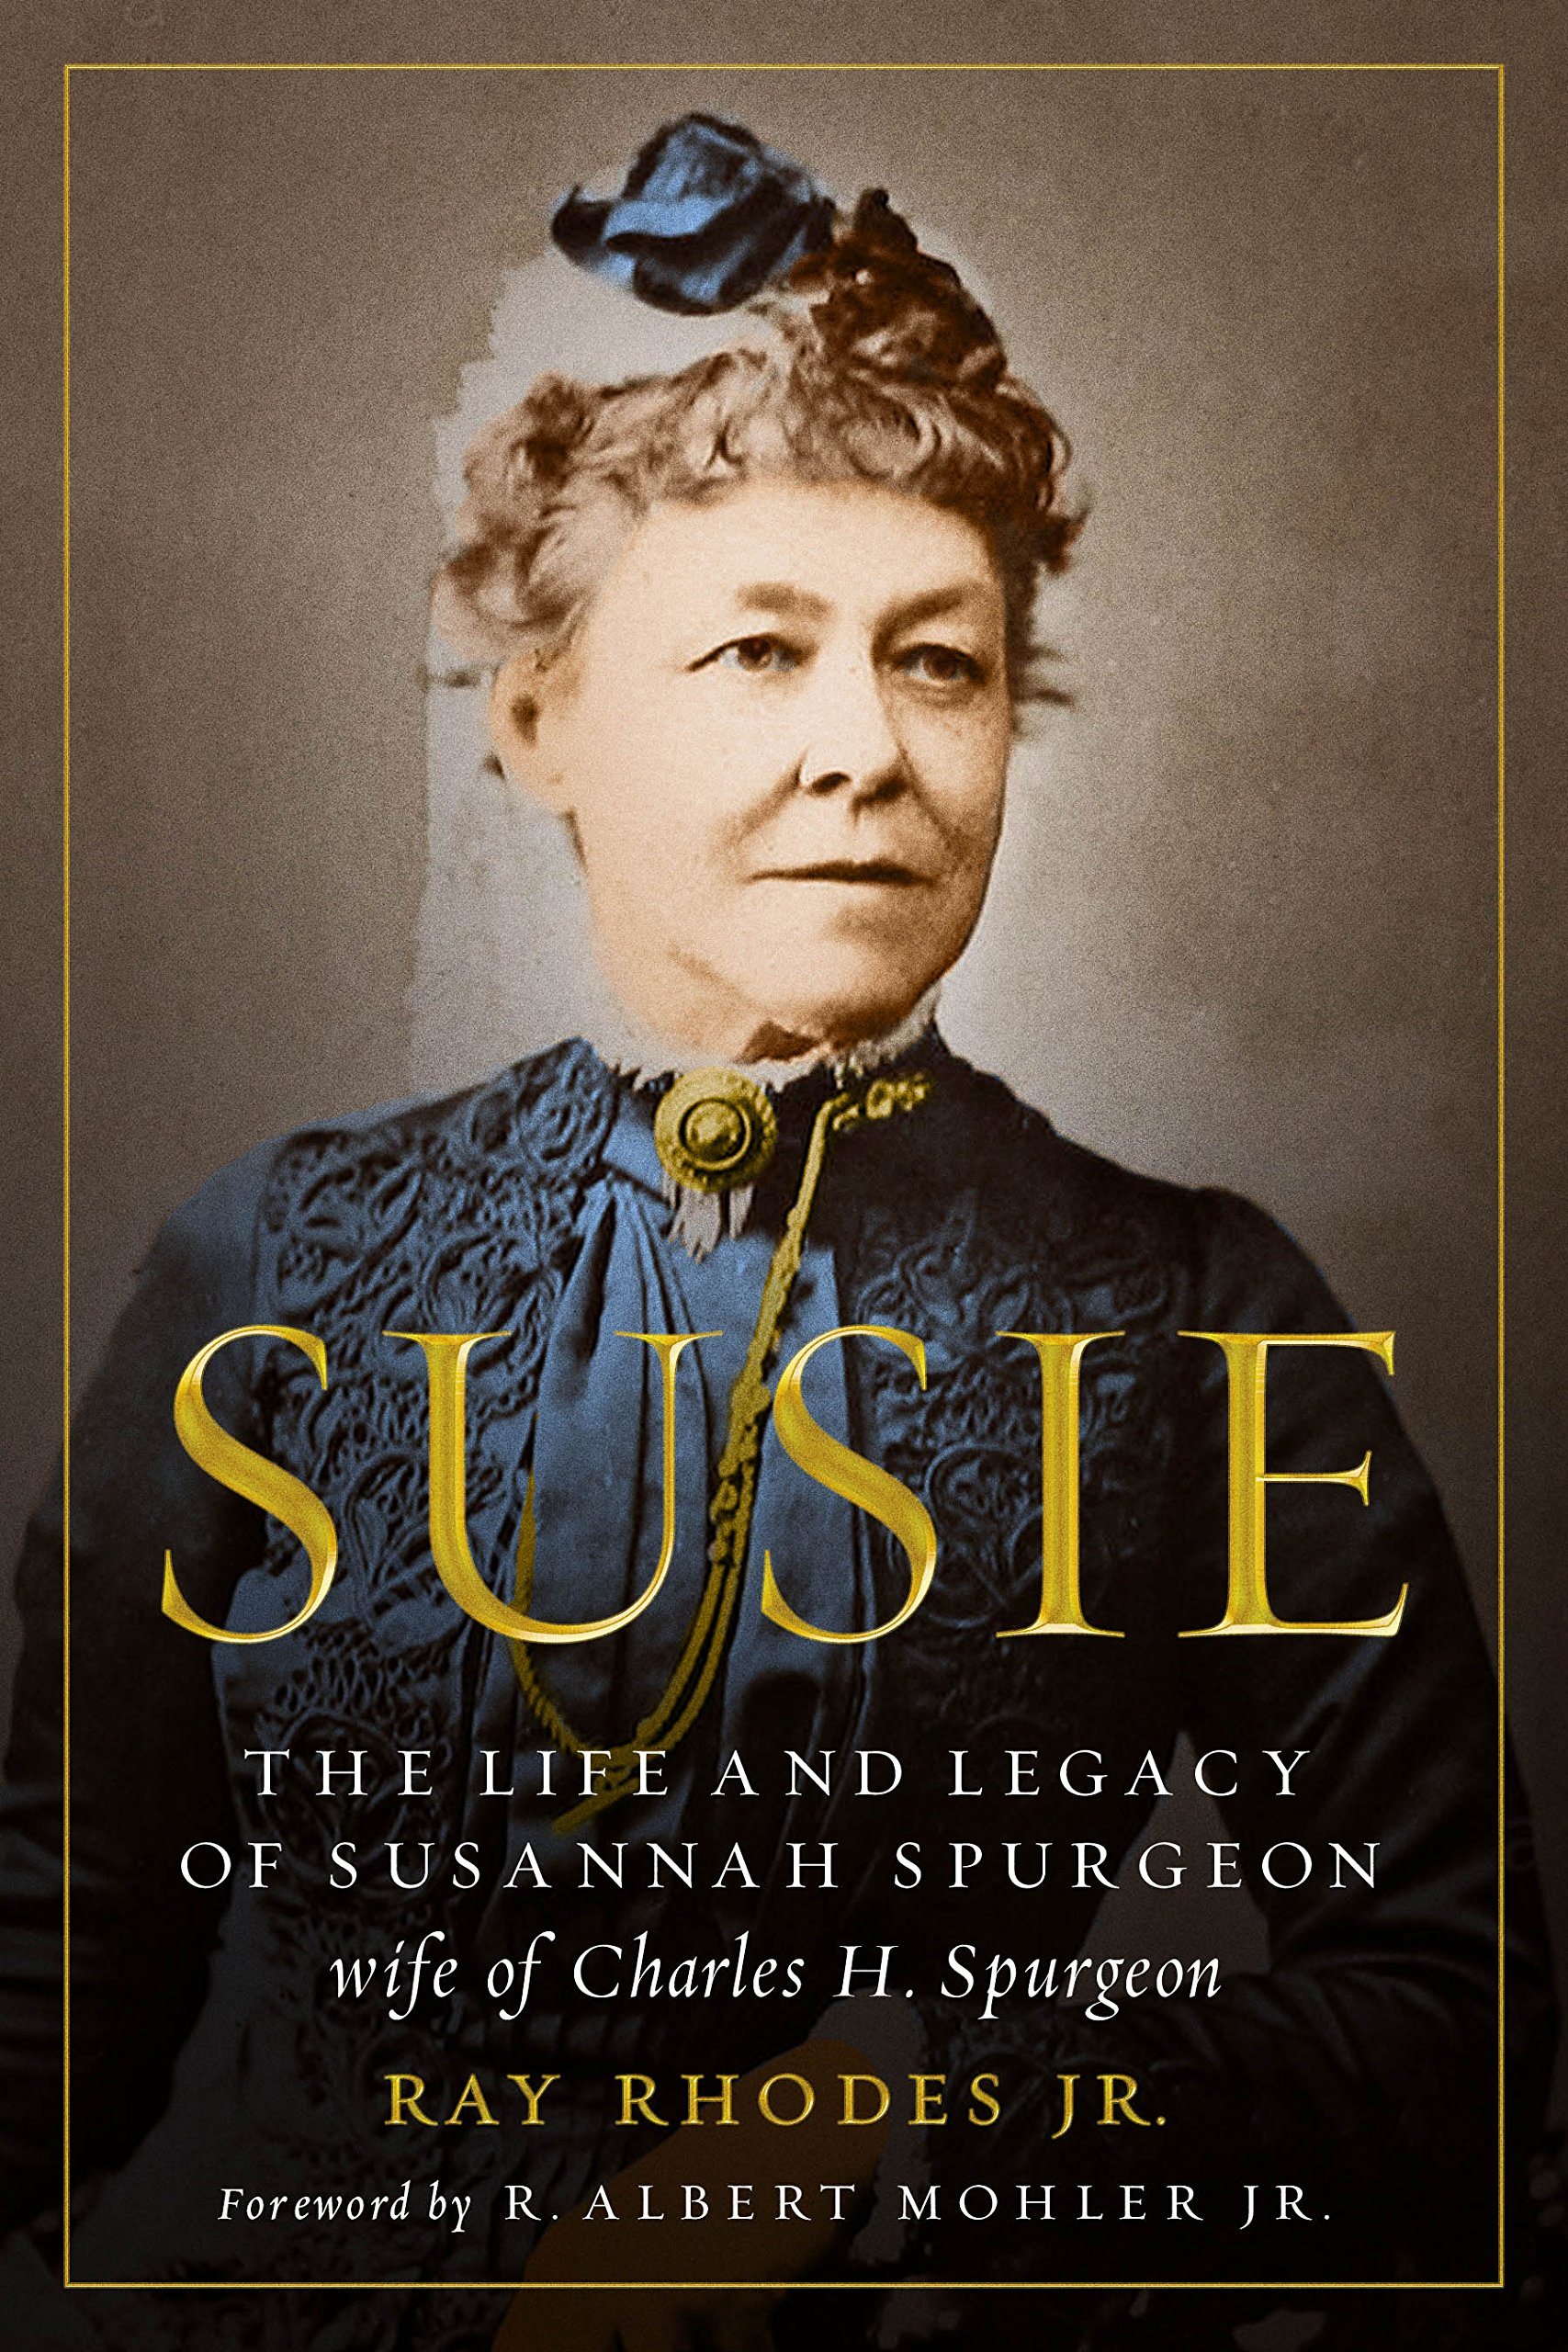 Susie: The Life and Legacy of Susannah Spurgeon, wife of Charles H. Spurgeon: Rhodes Jr., Ray, Mohler Jr., R. Albert: 9780802418340: Amazon.com: Books